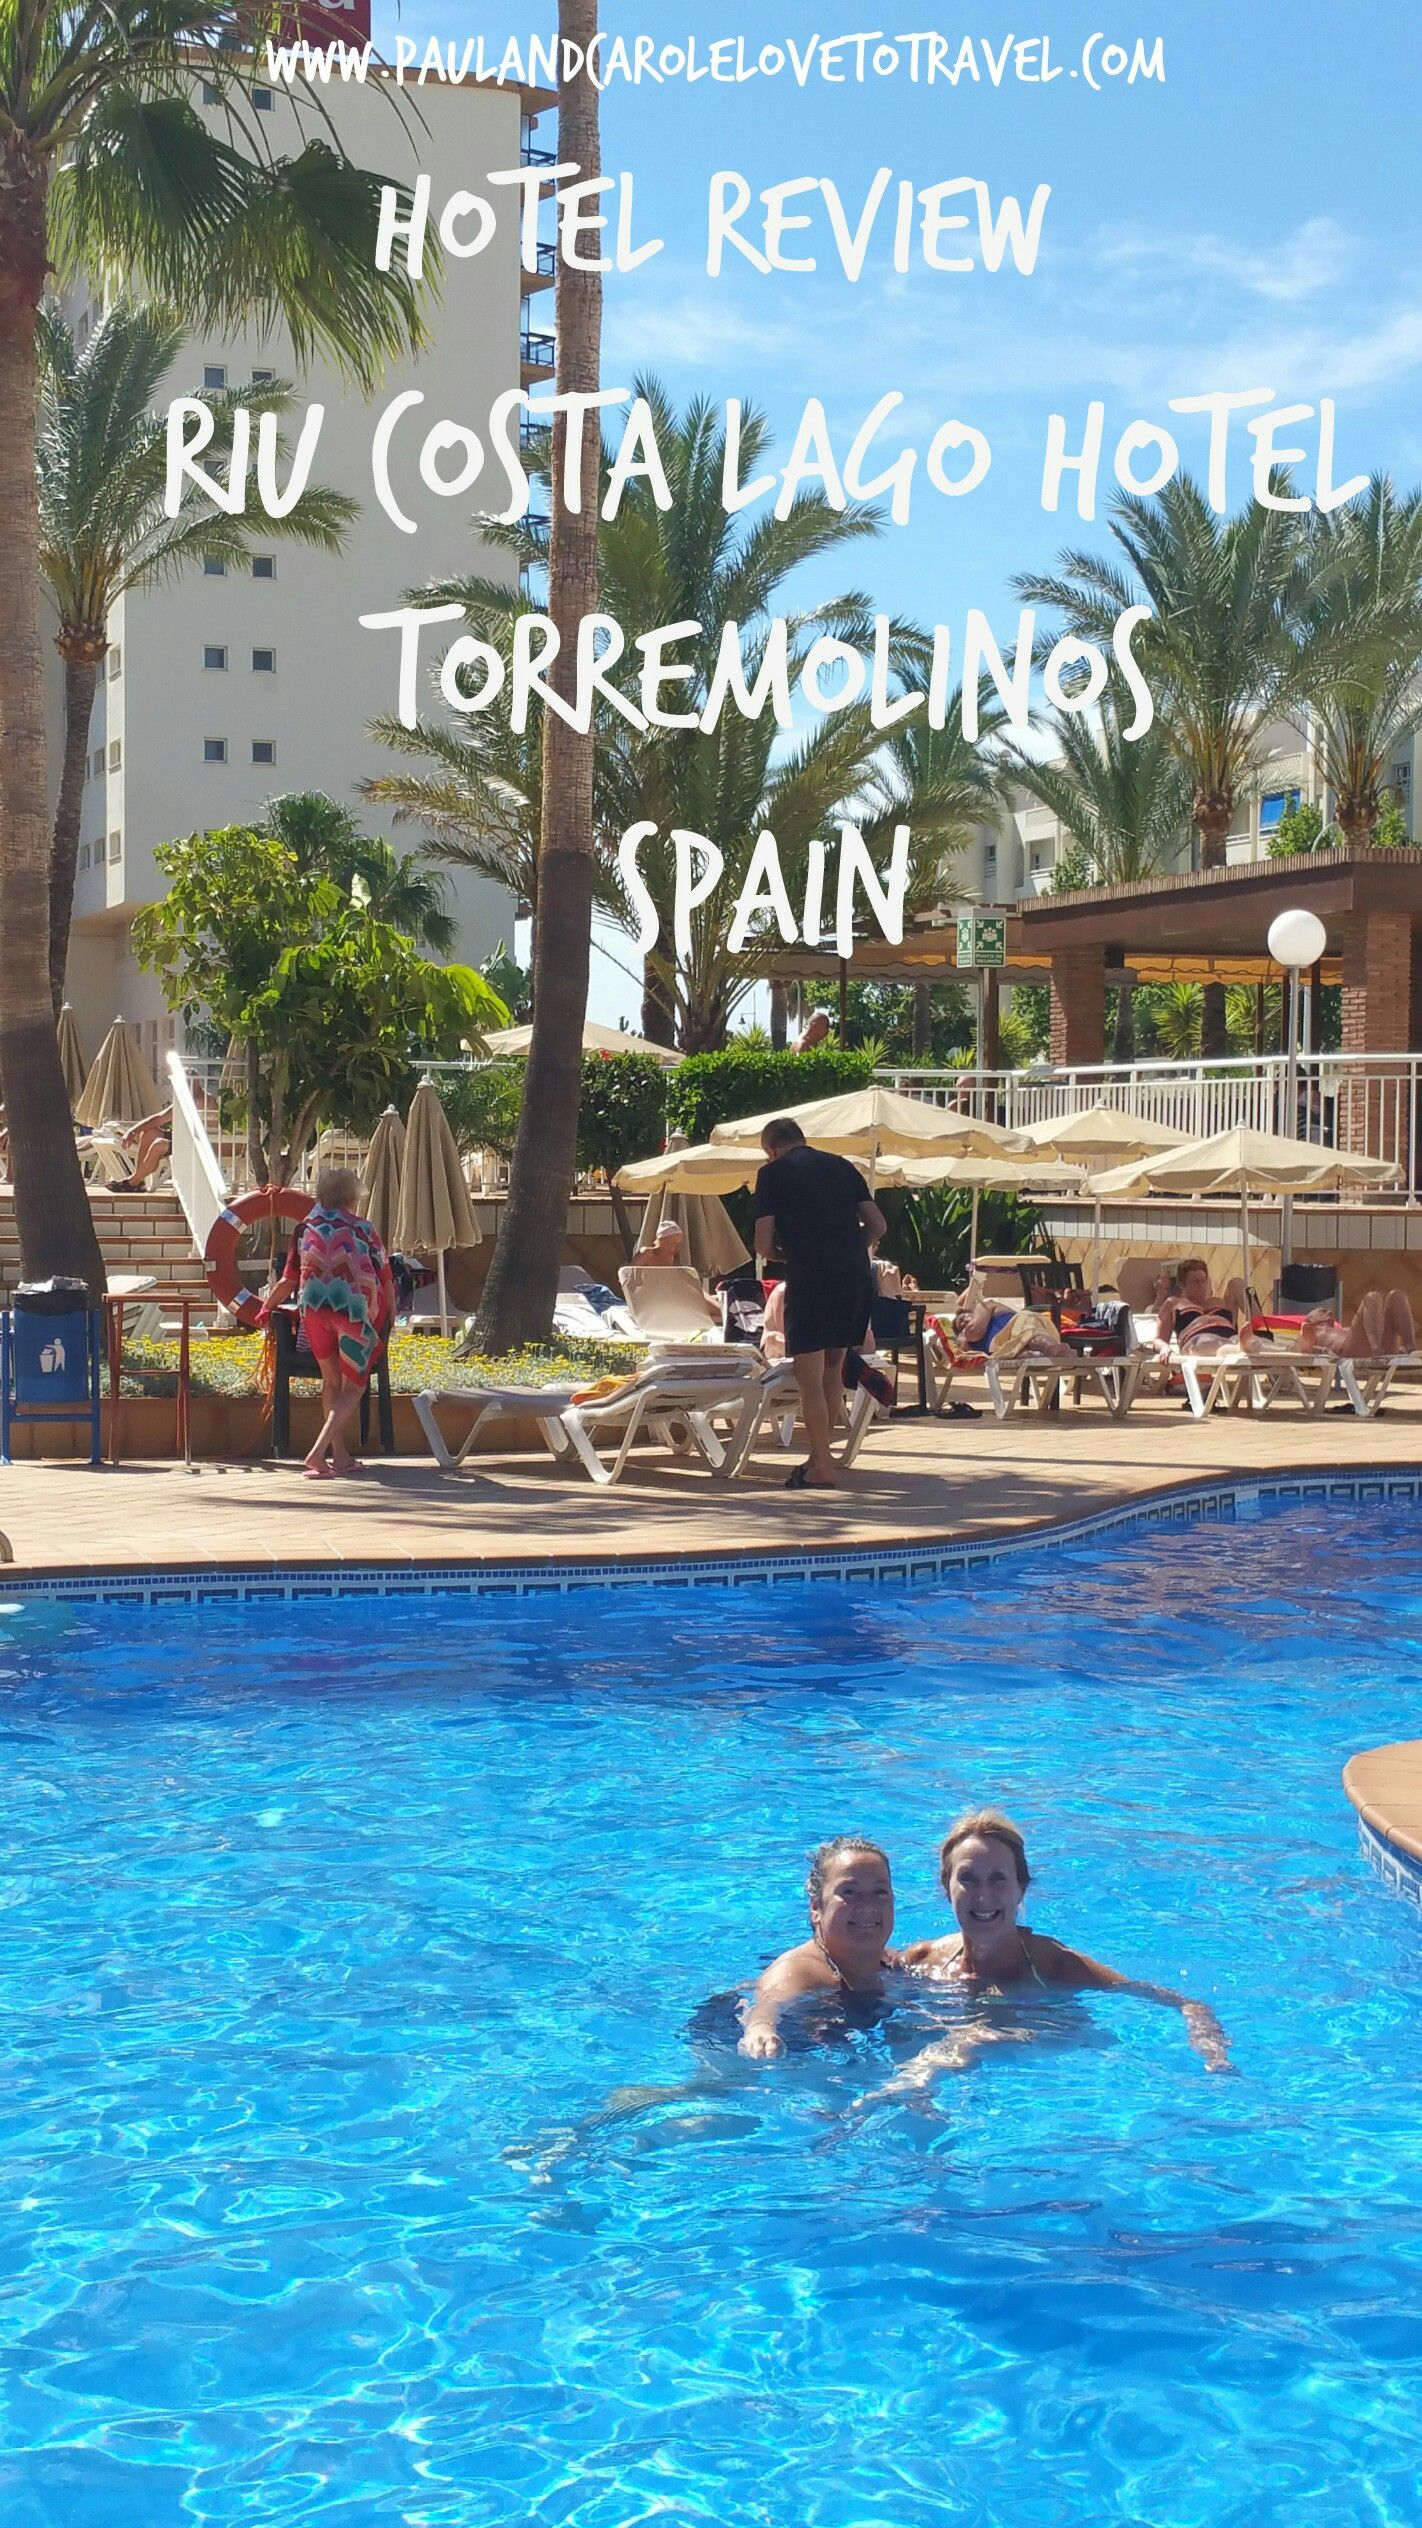 e02fe78d61fb Hotel review - our stay at the Riu Costa Lago Hotel in Torremolinos